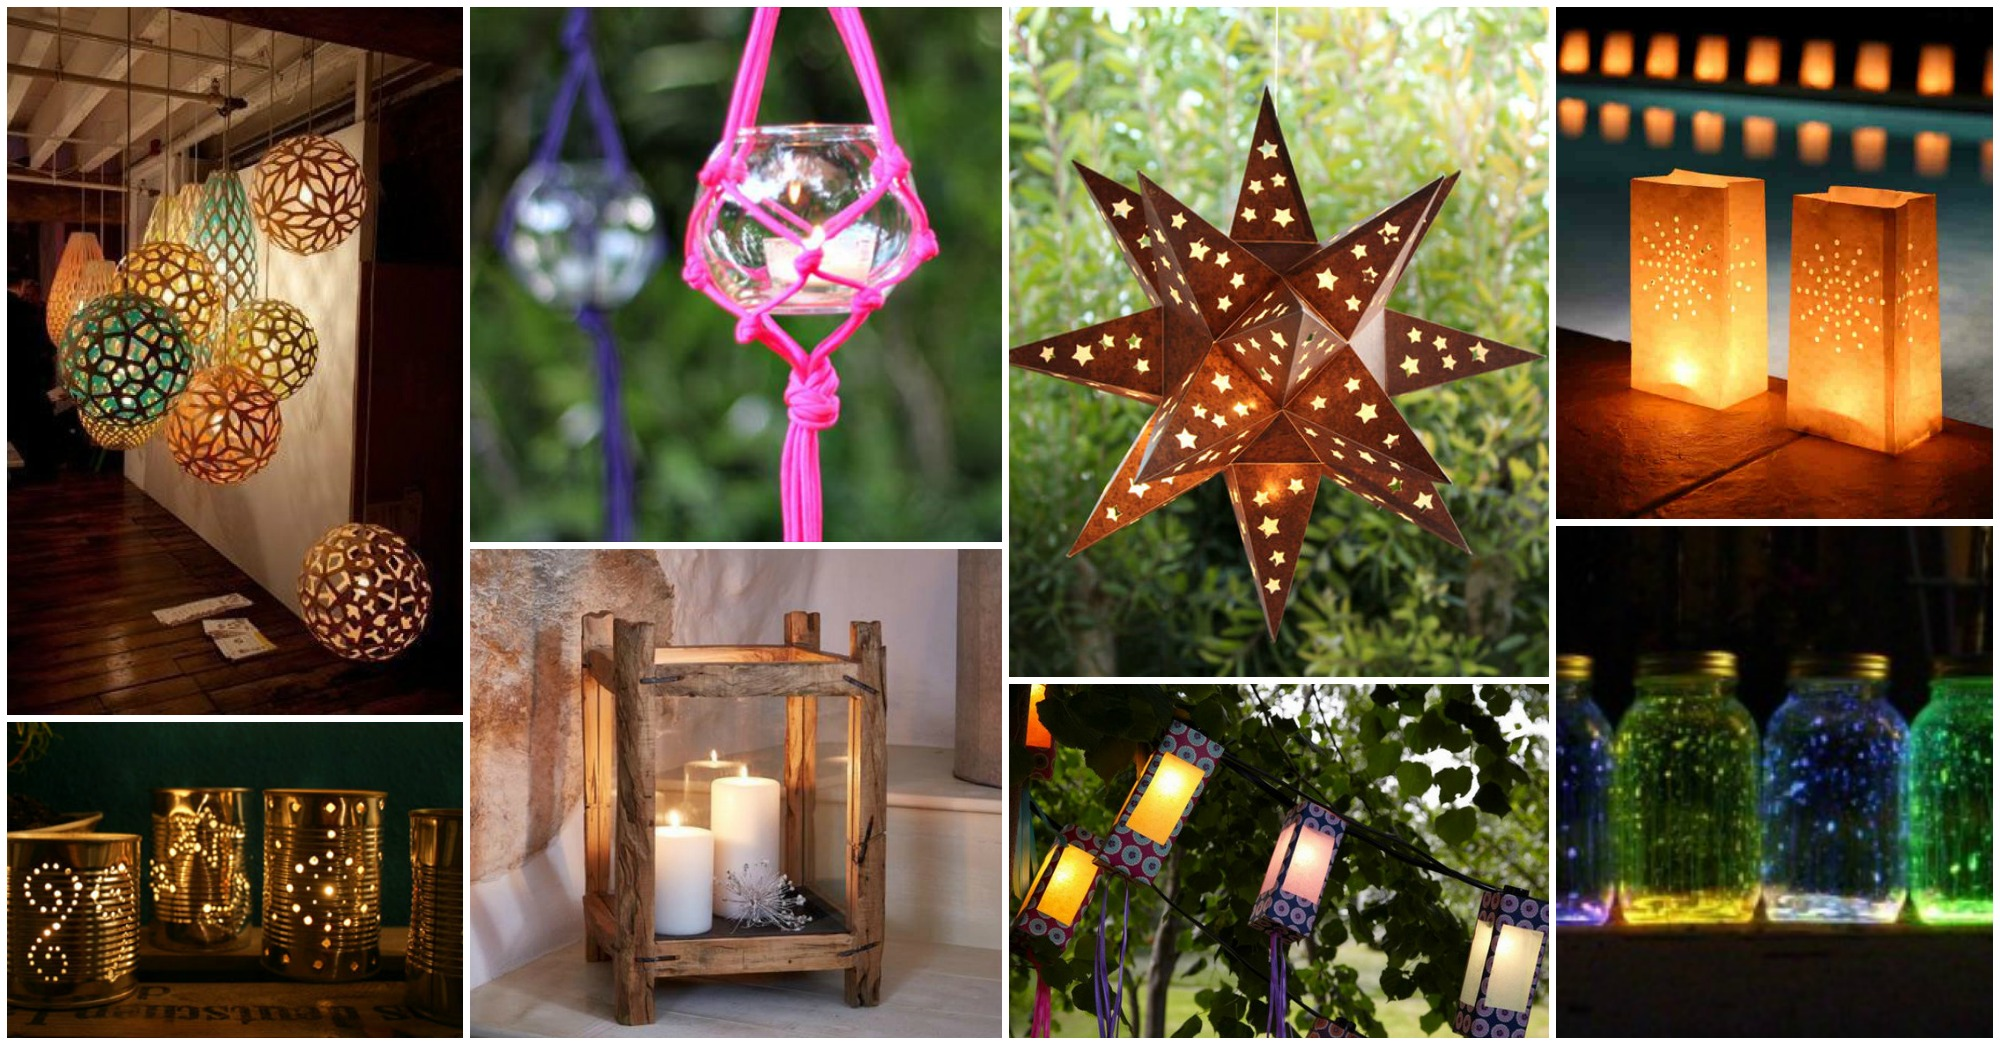 diy-garden-lantern-ideas